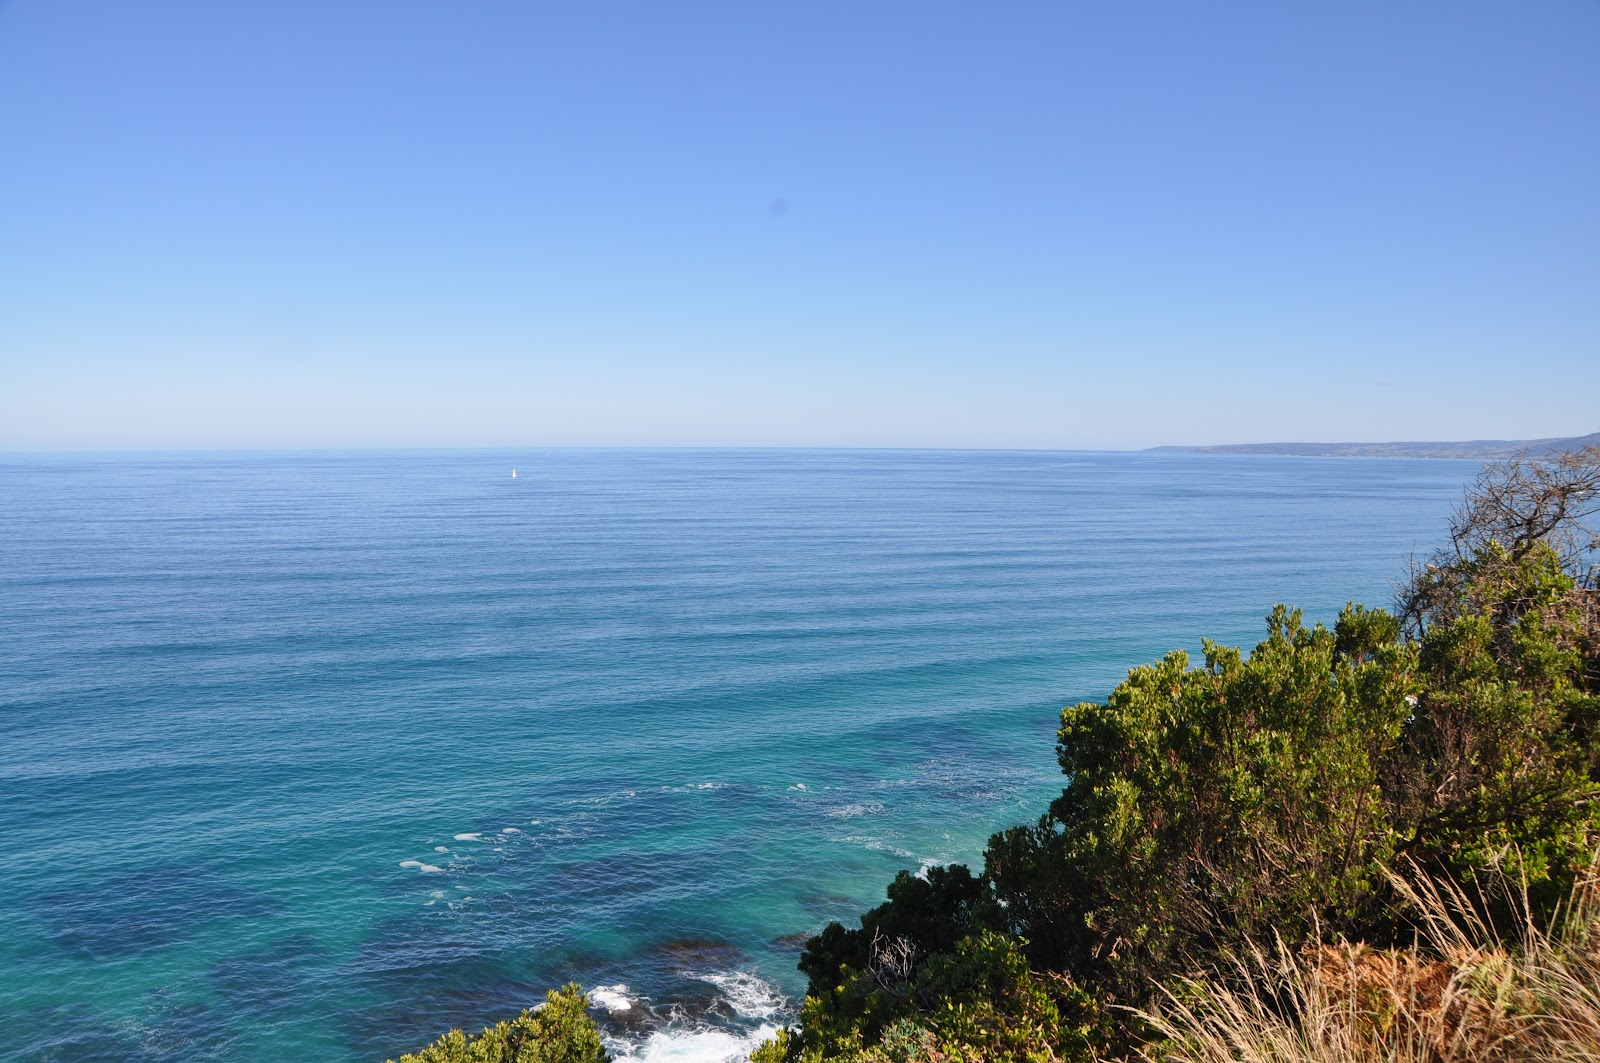 lorne crystal blue ocean view and nearby tree branches seen from viewing point above a cliff. See it from the great ocean road during our australia road trip itinerary.